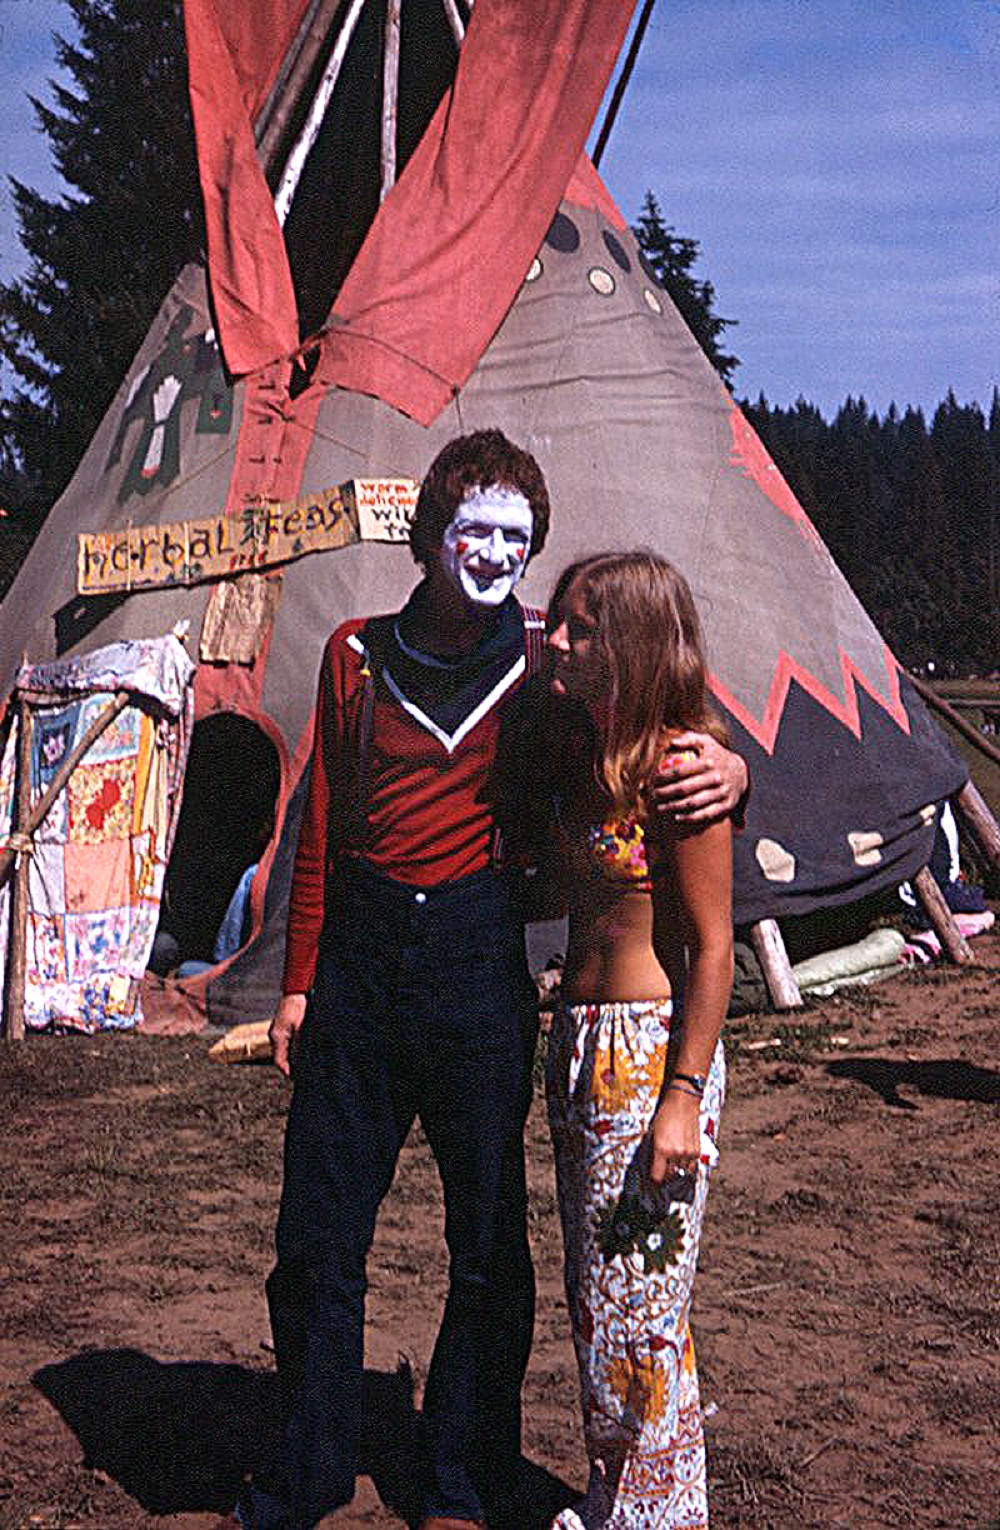 Girl with Clown - Vortex 1 - 1970 - McIver State Park